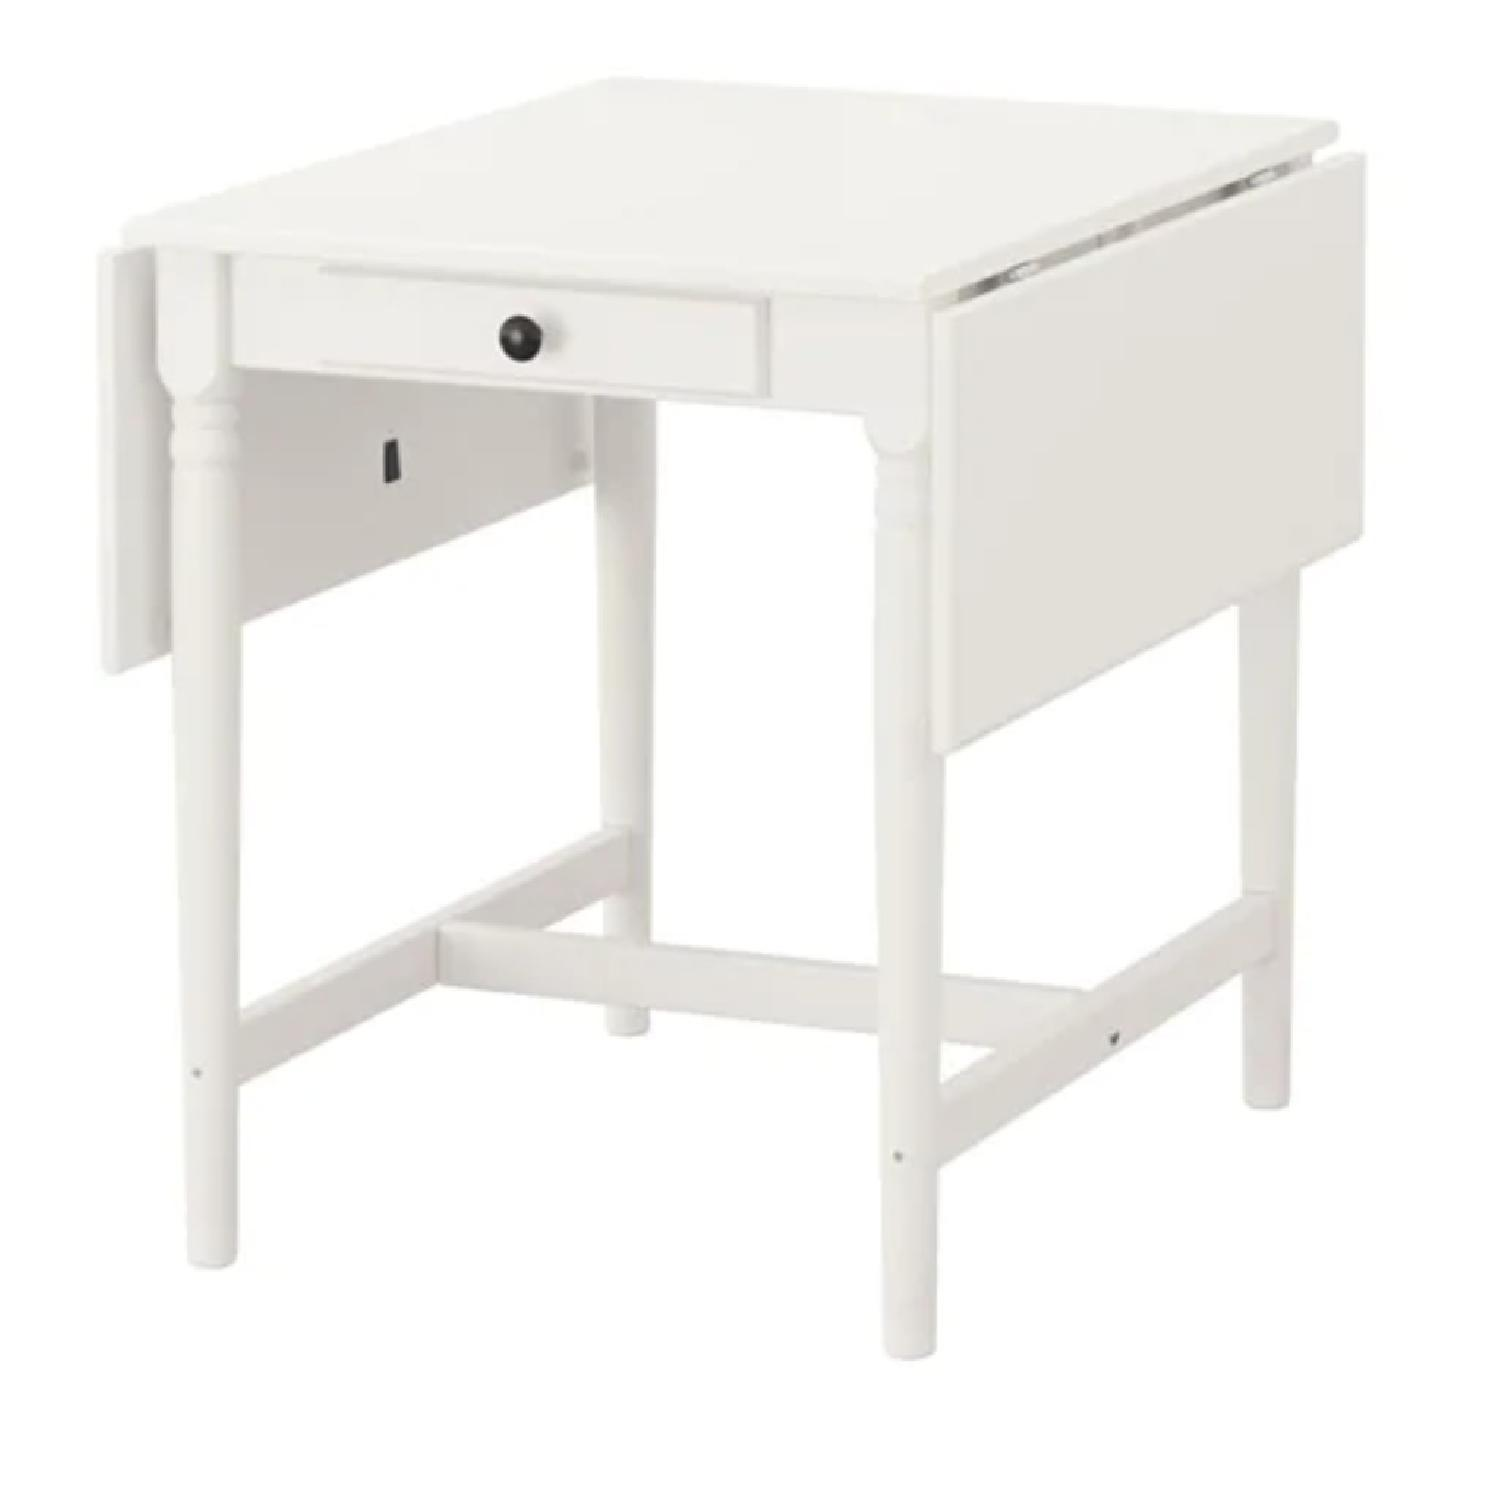 Ikea Ingatorp Drop-Leaf Dining Table